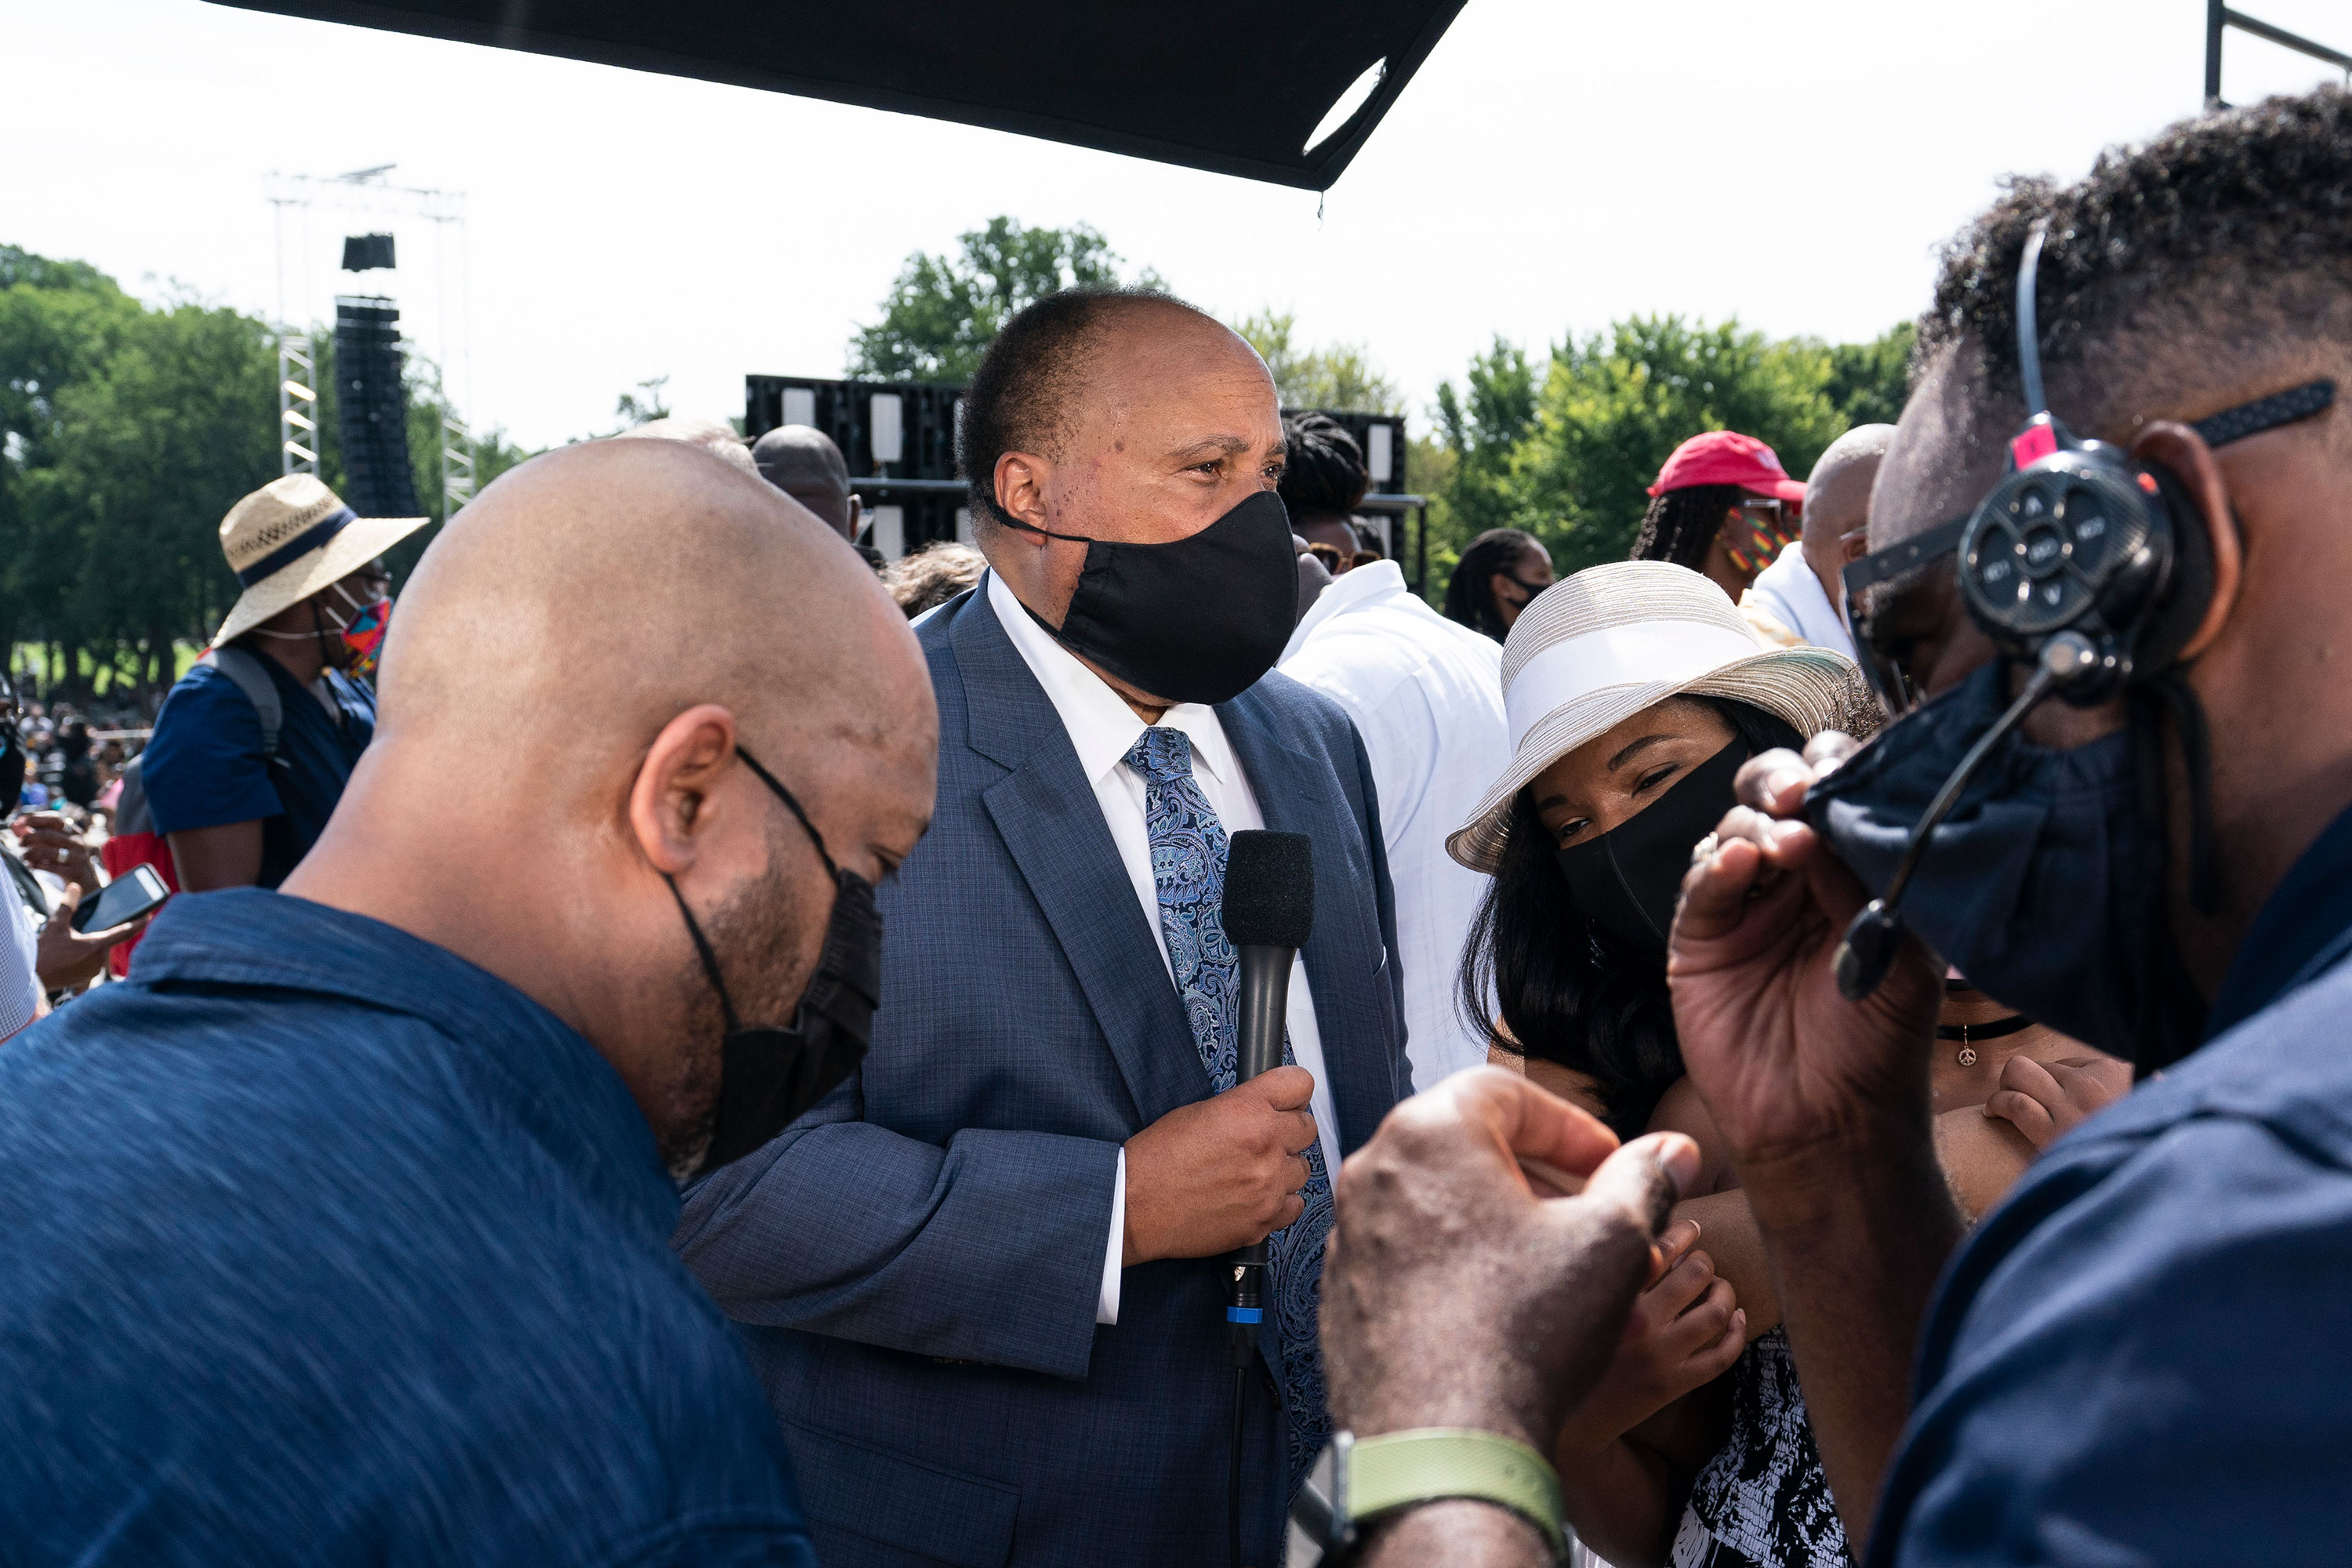 Martin Luther King III, second from left, prepares for a television interview at the March on Washington on August 28.